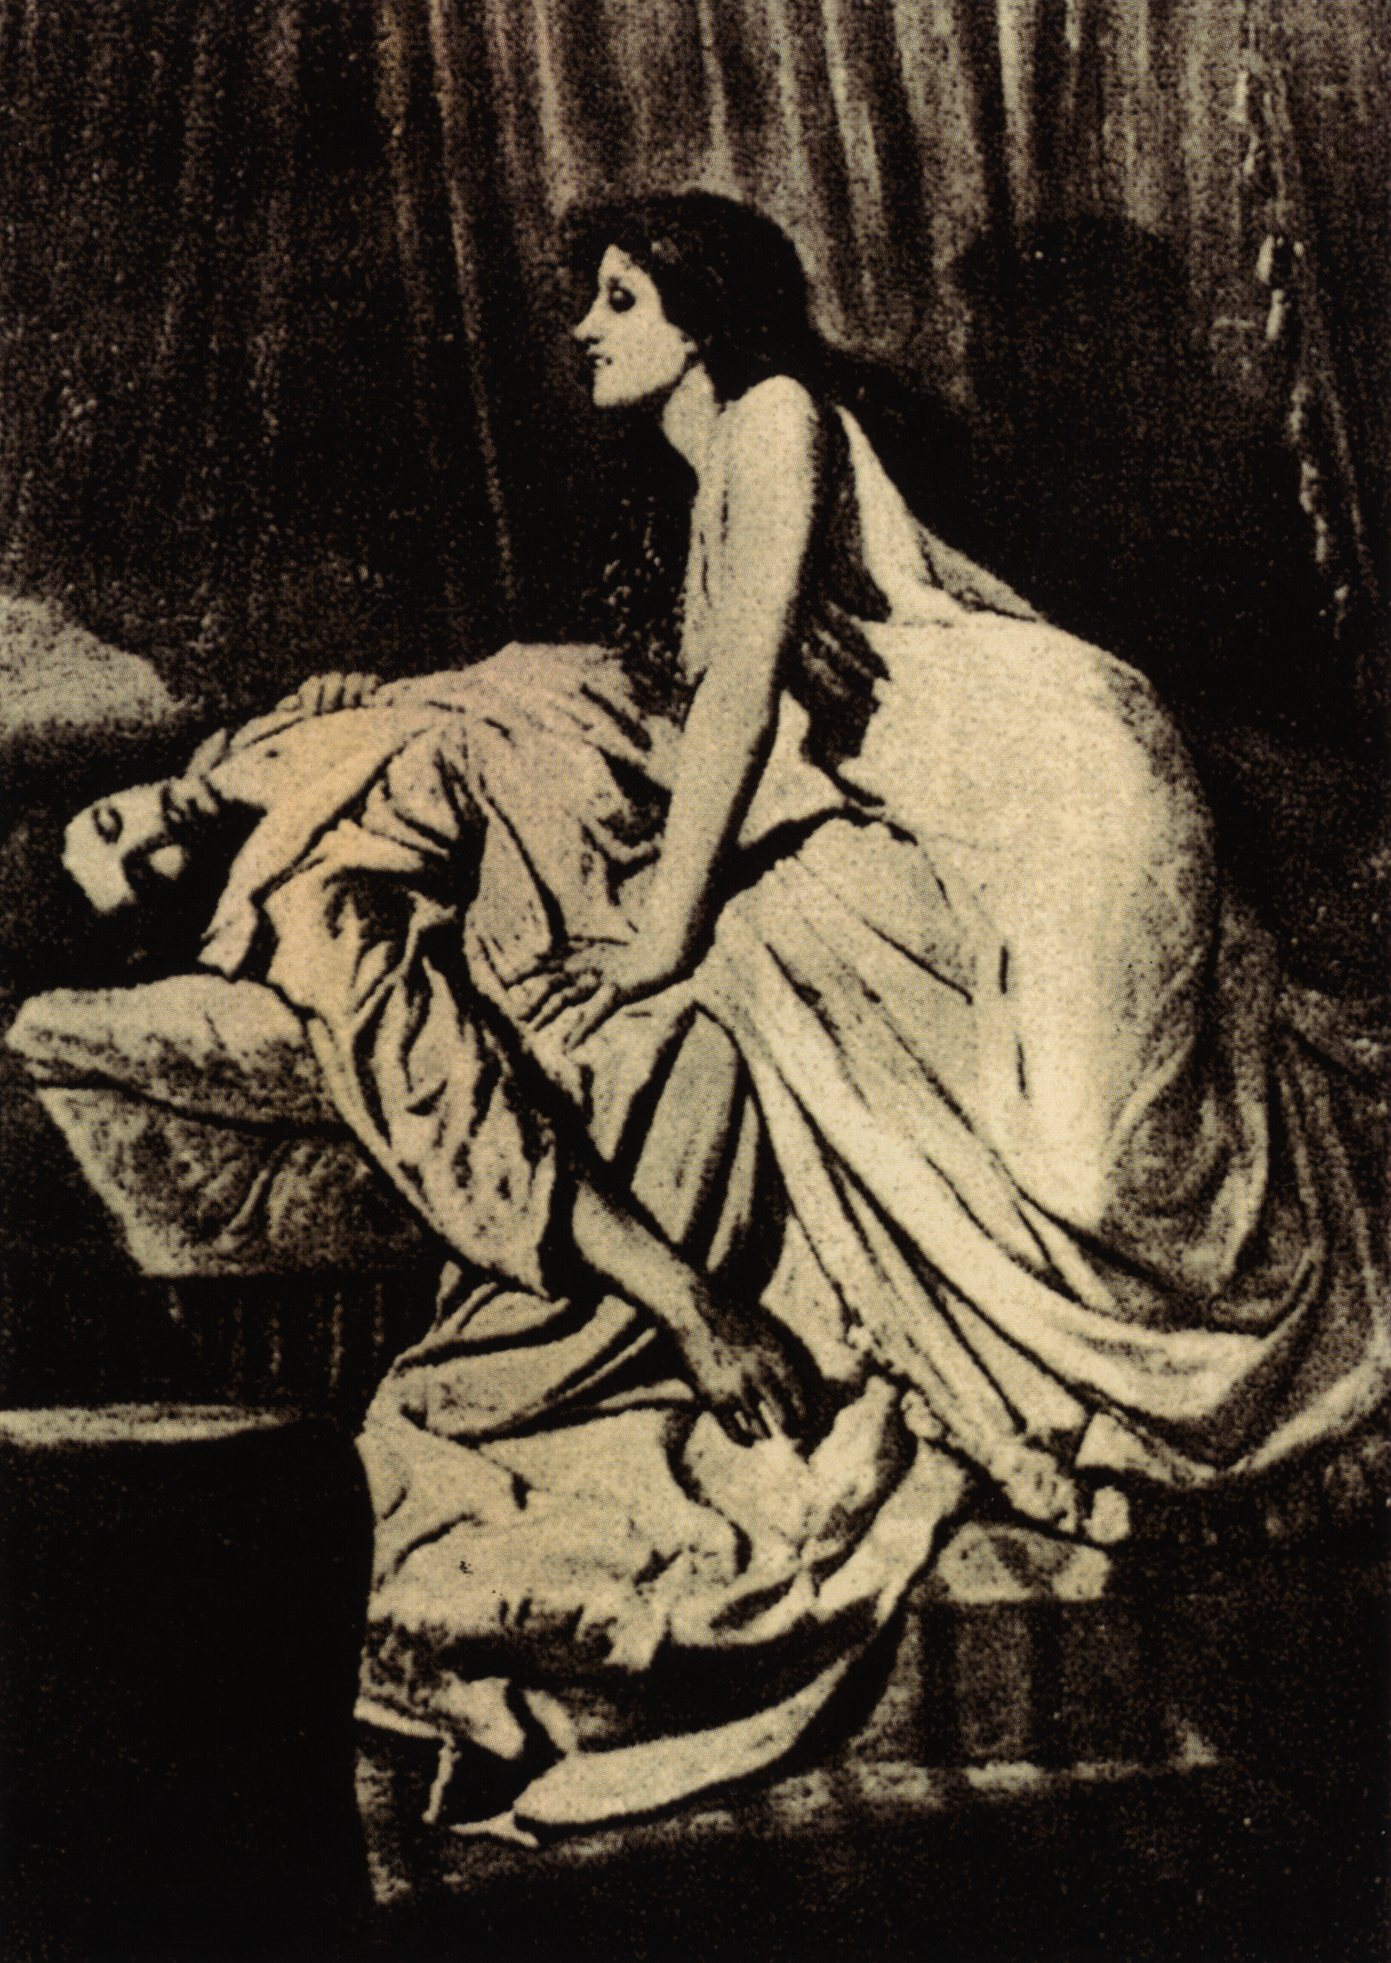 Philip Burne-Jones, The Vampire, 1897